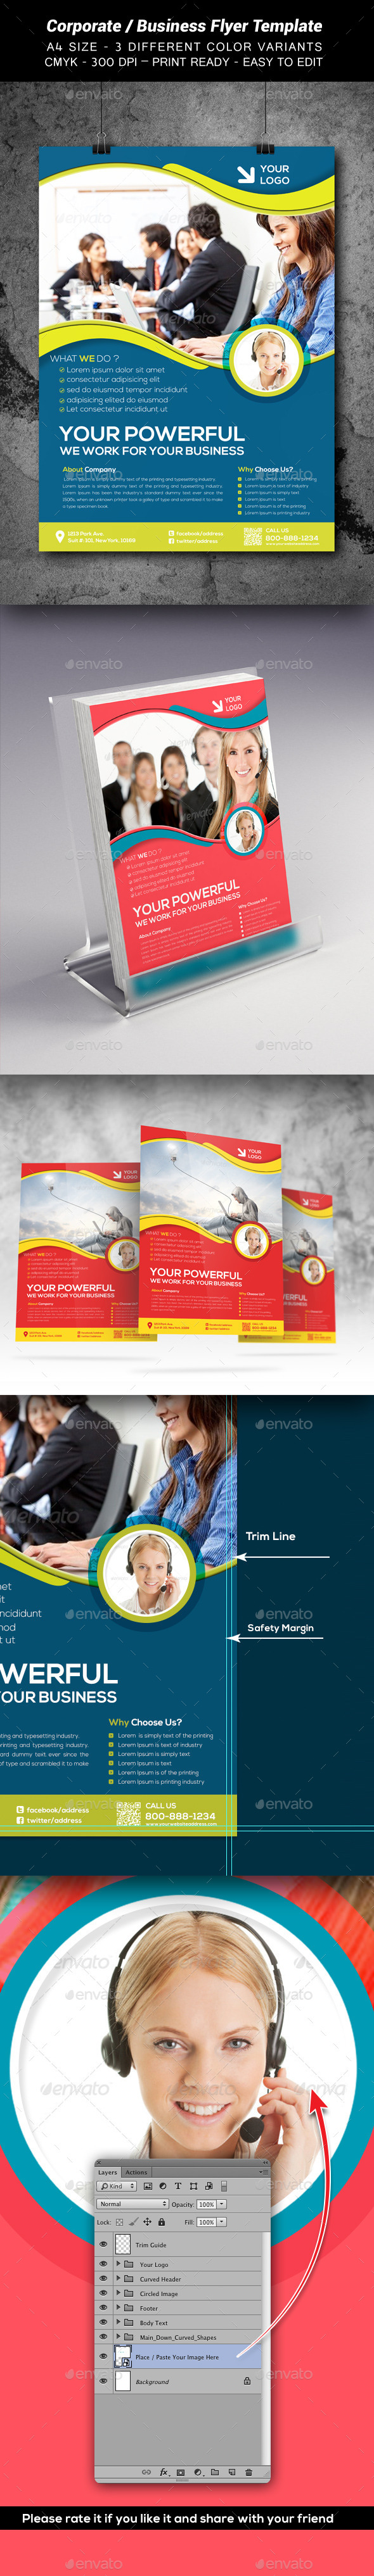 GraphicRiver Corporate Business Flyer Template3 9383435